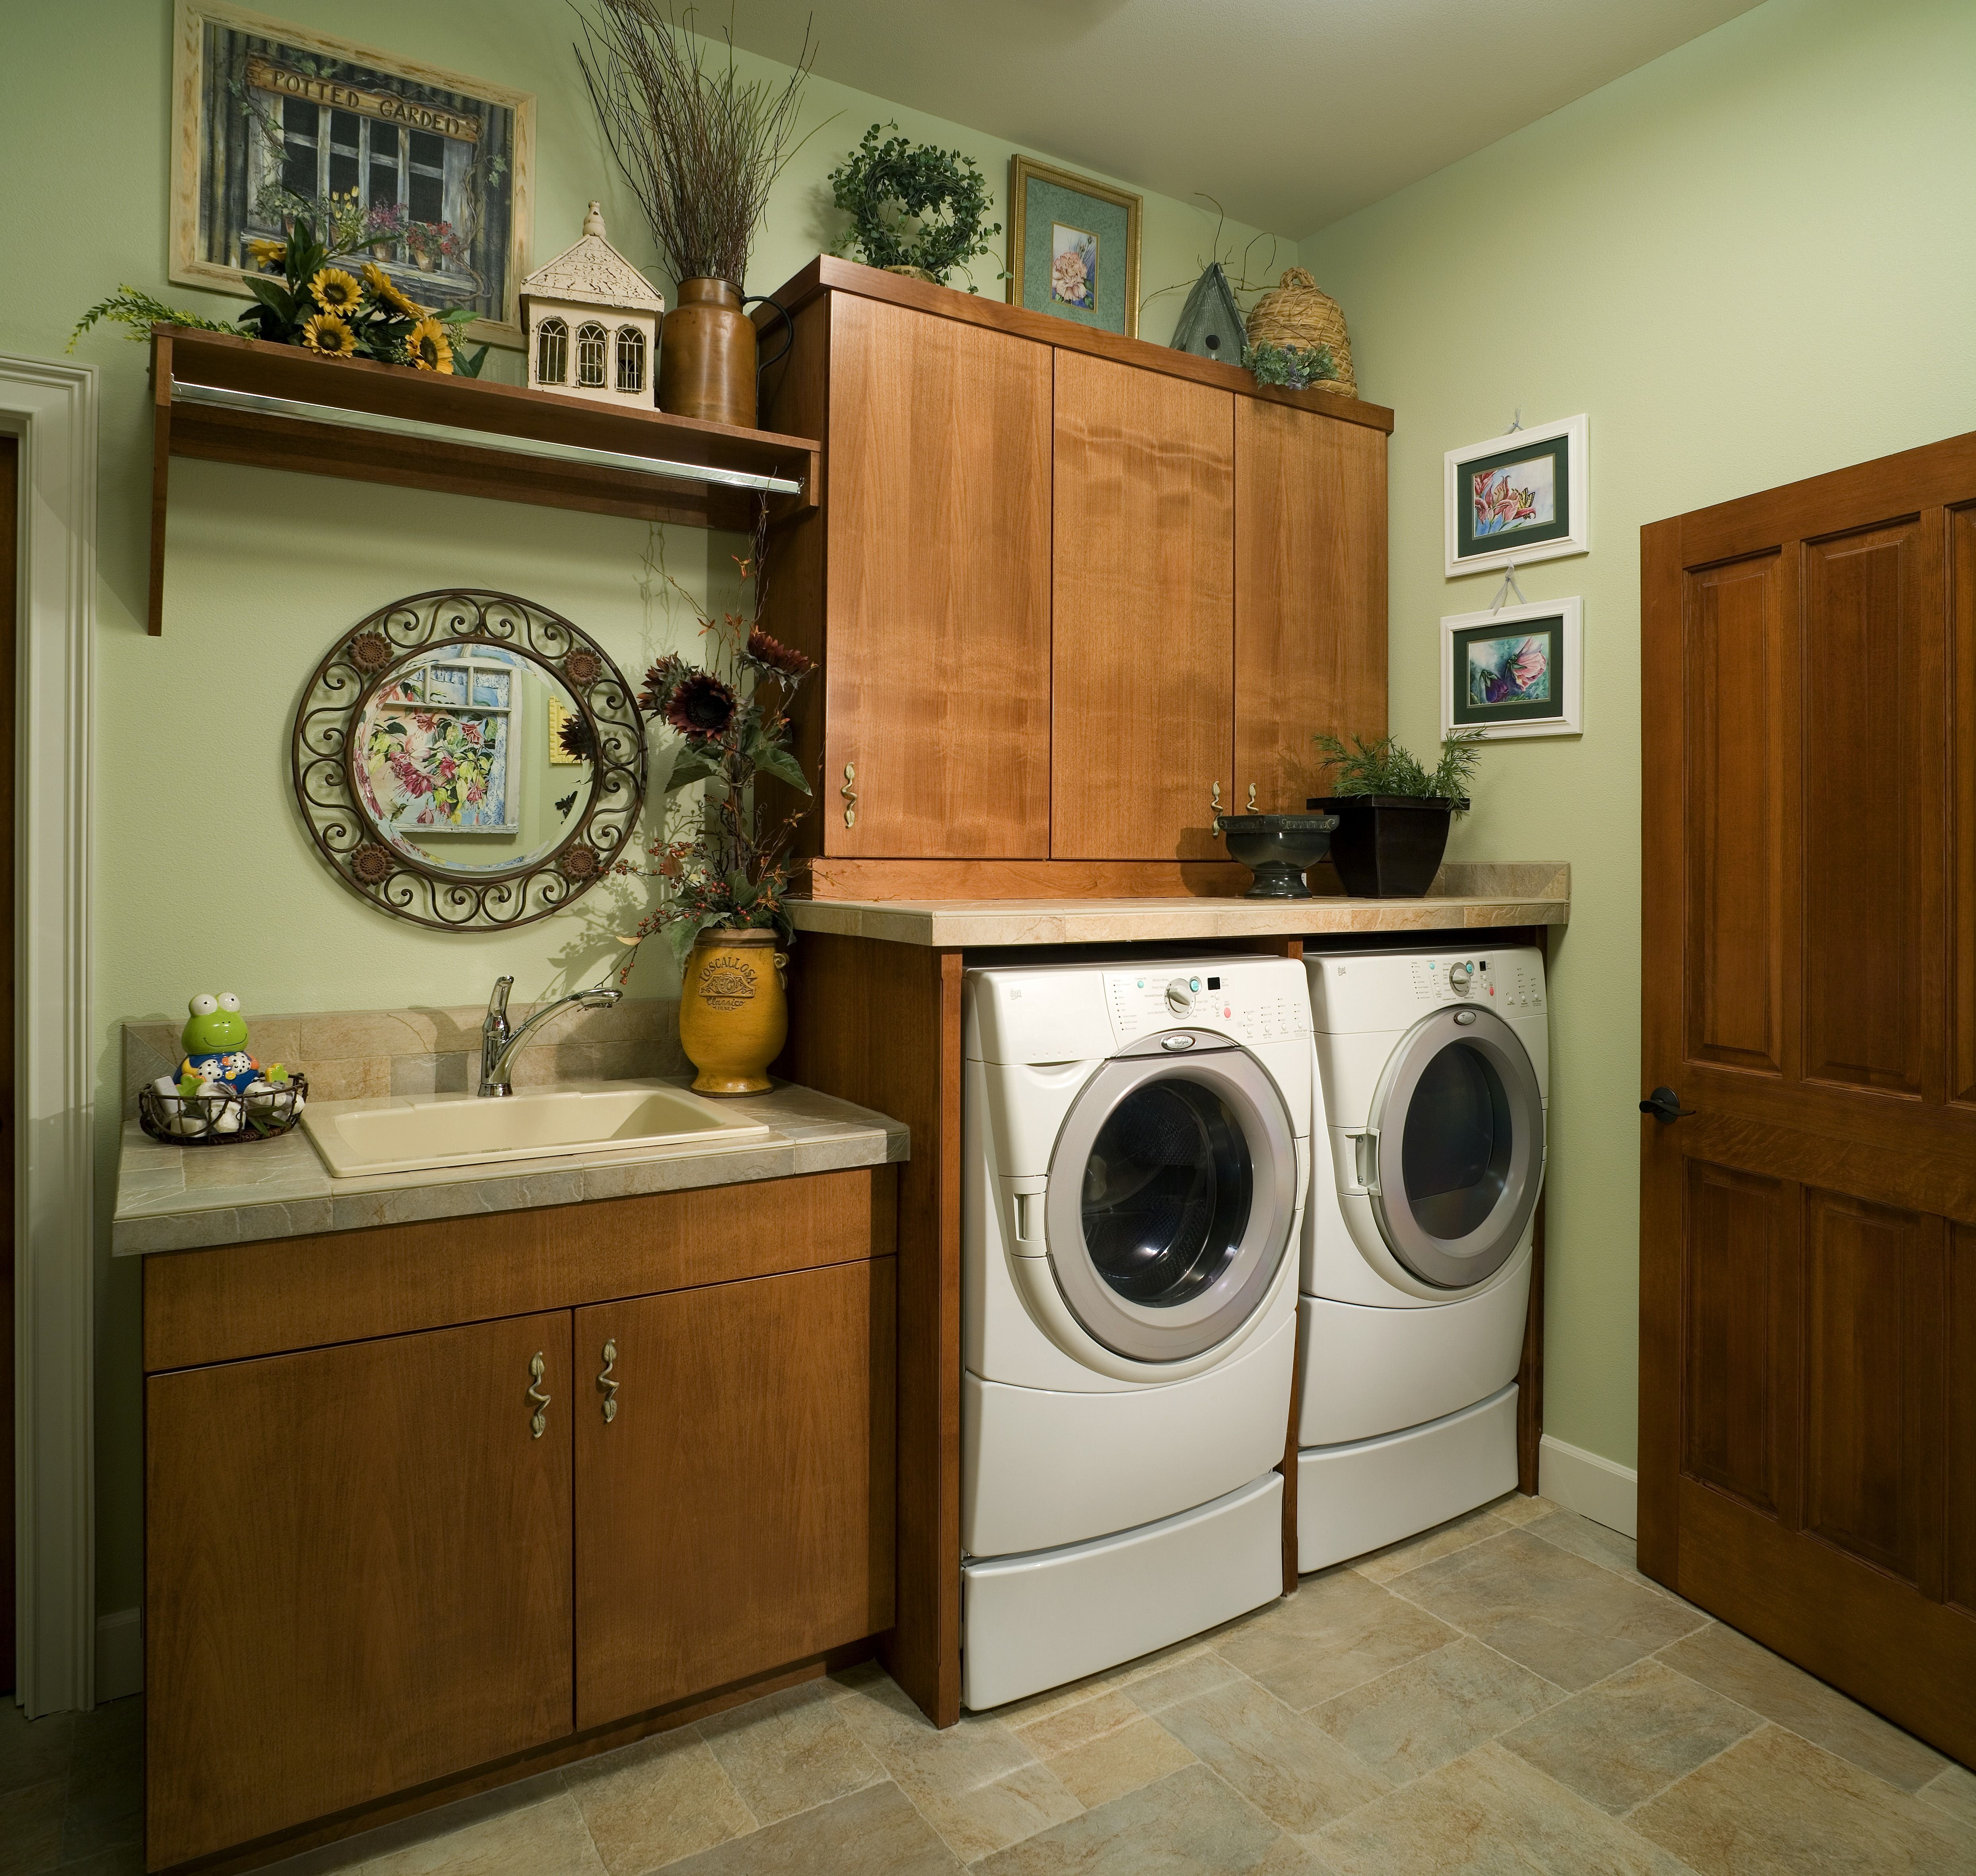 This contemporary laundry room is both casual and